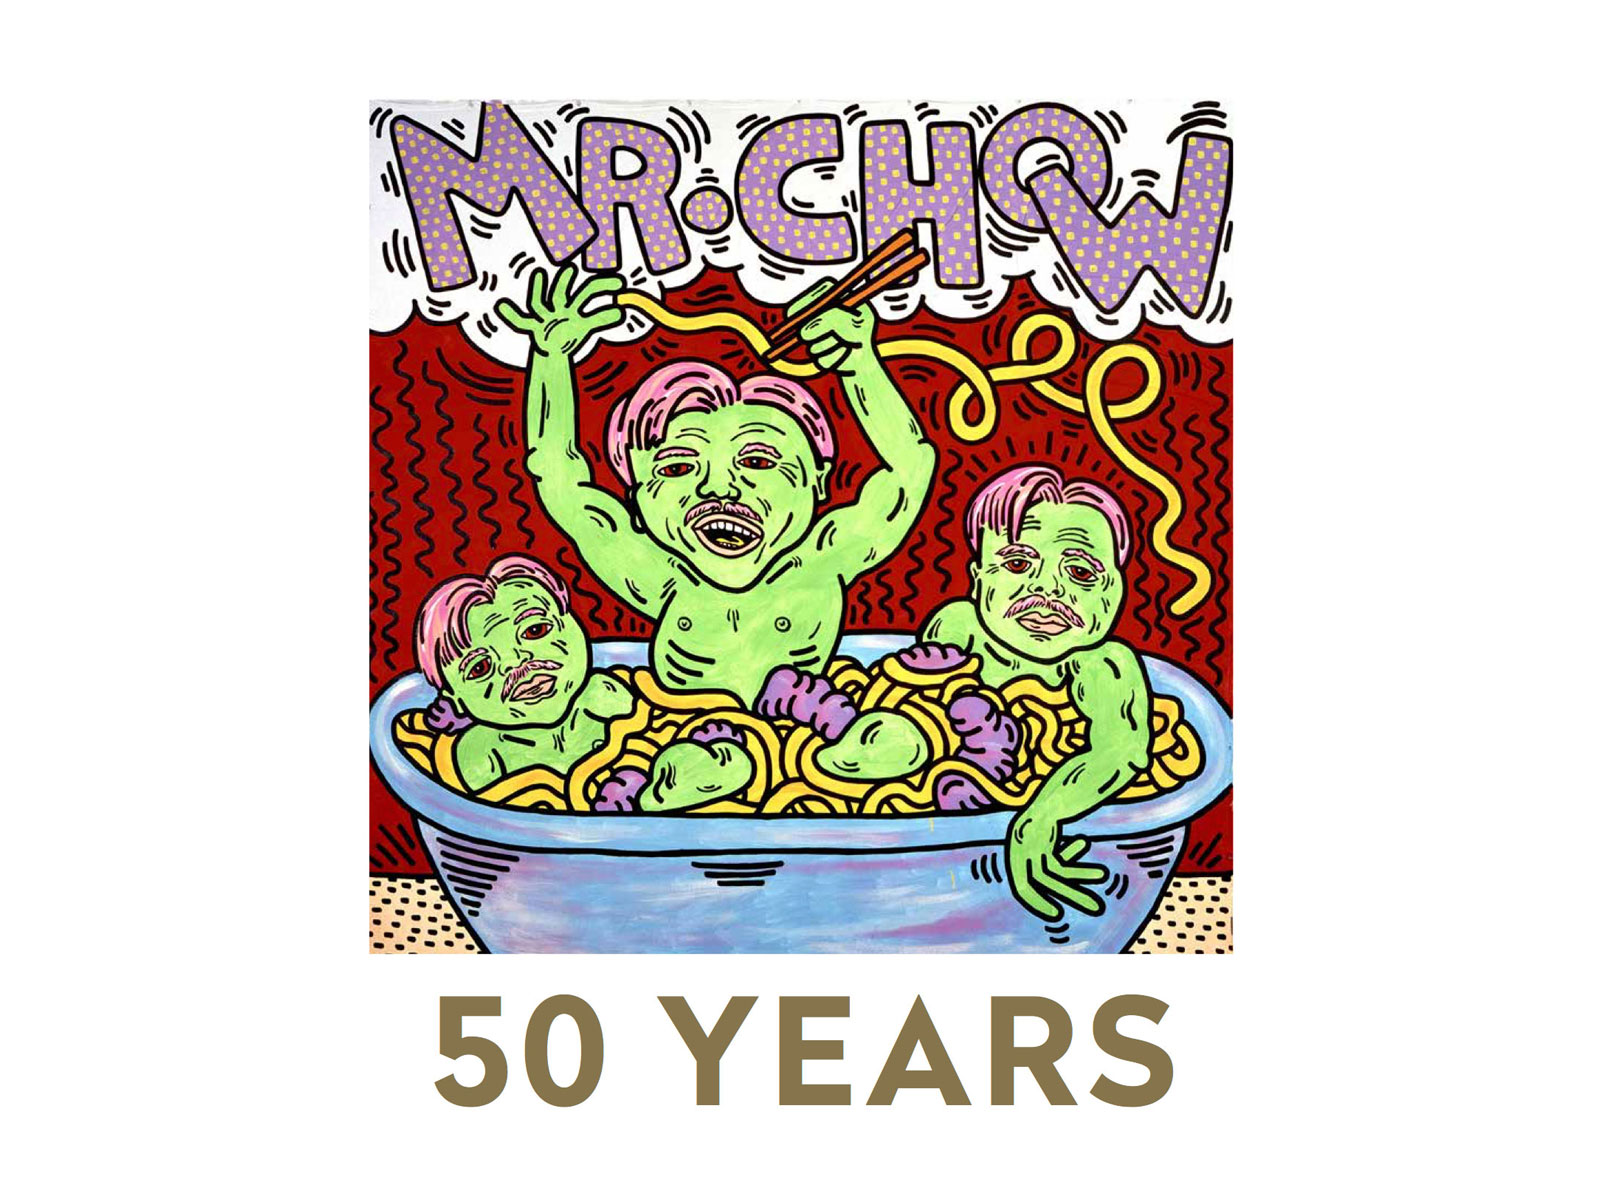 Mr. Chow Celebrates 50-Year Legacy with New Art Book